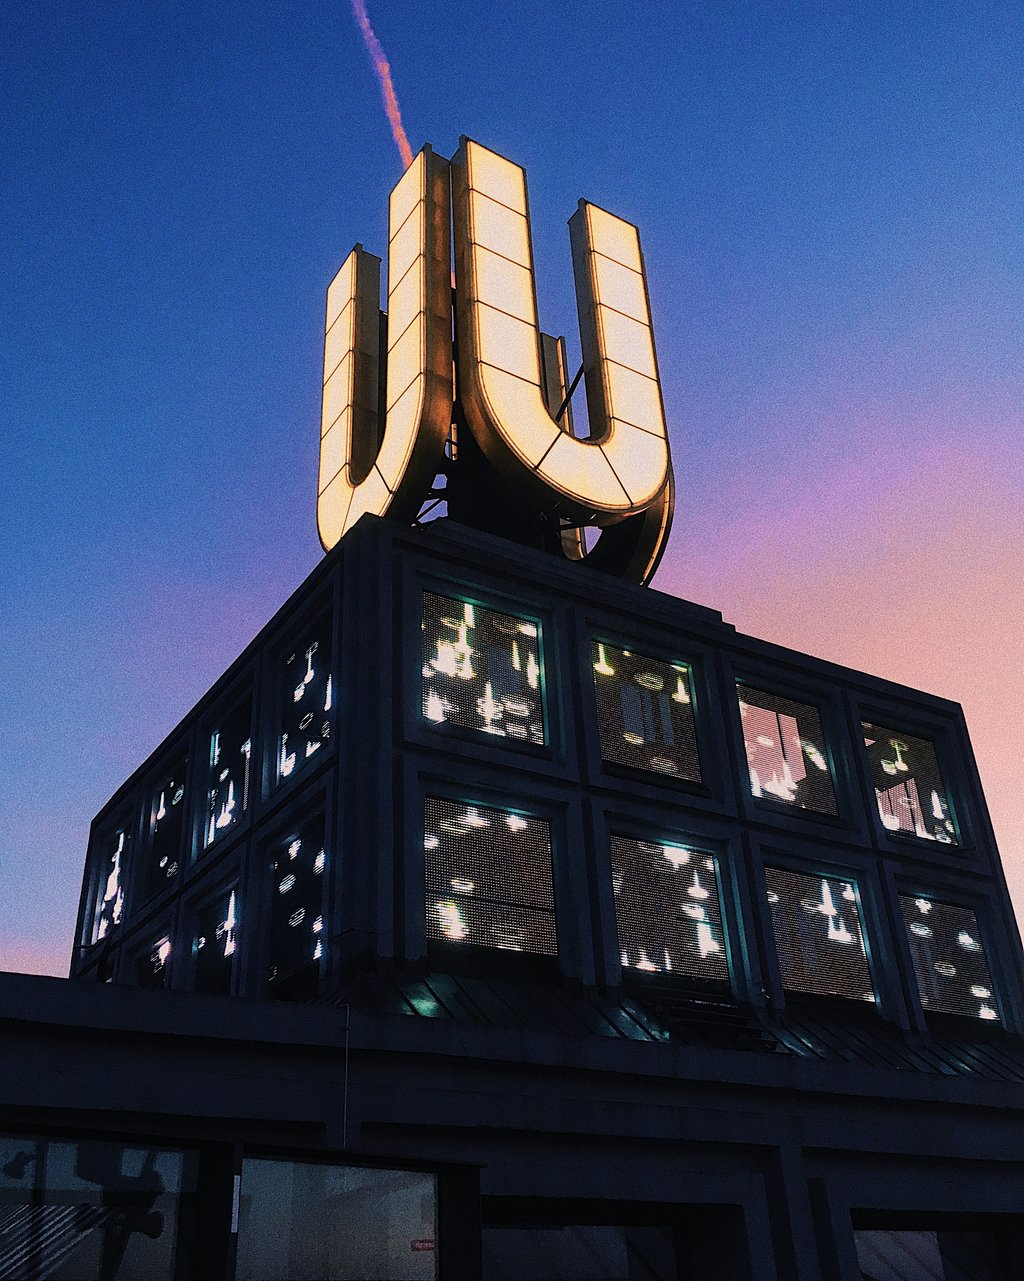 U-Tower-Dortmund.jpg?1577639660